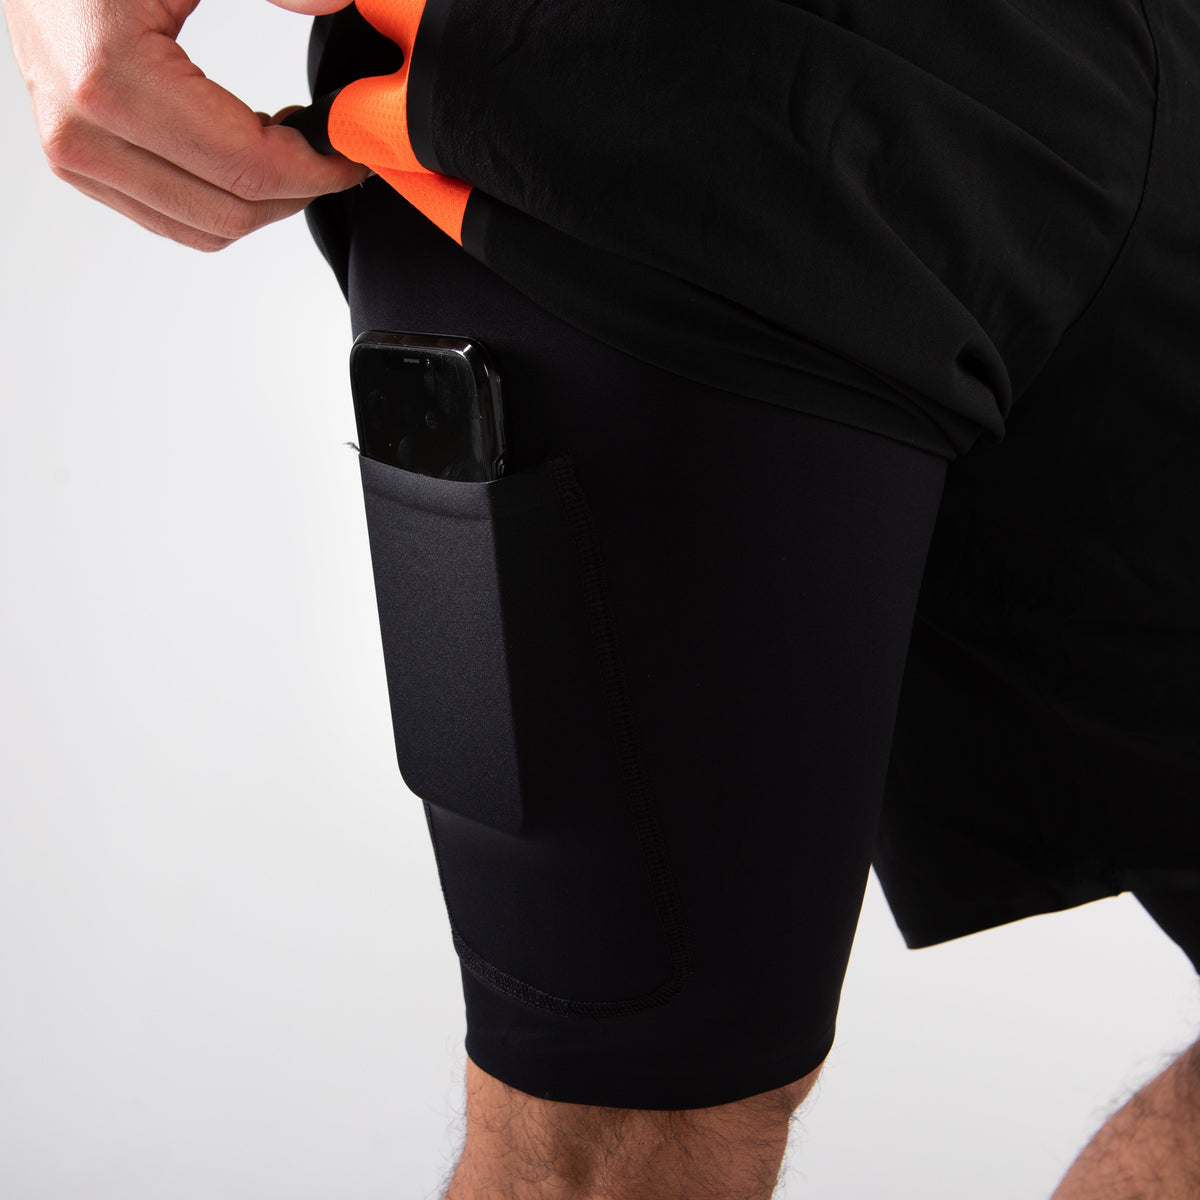 Men's RX3 Medical Grade Compression 2-in-1 Shorts pocket